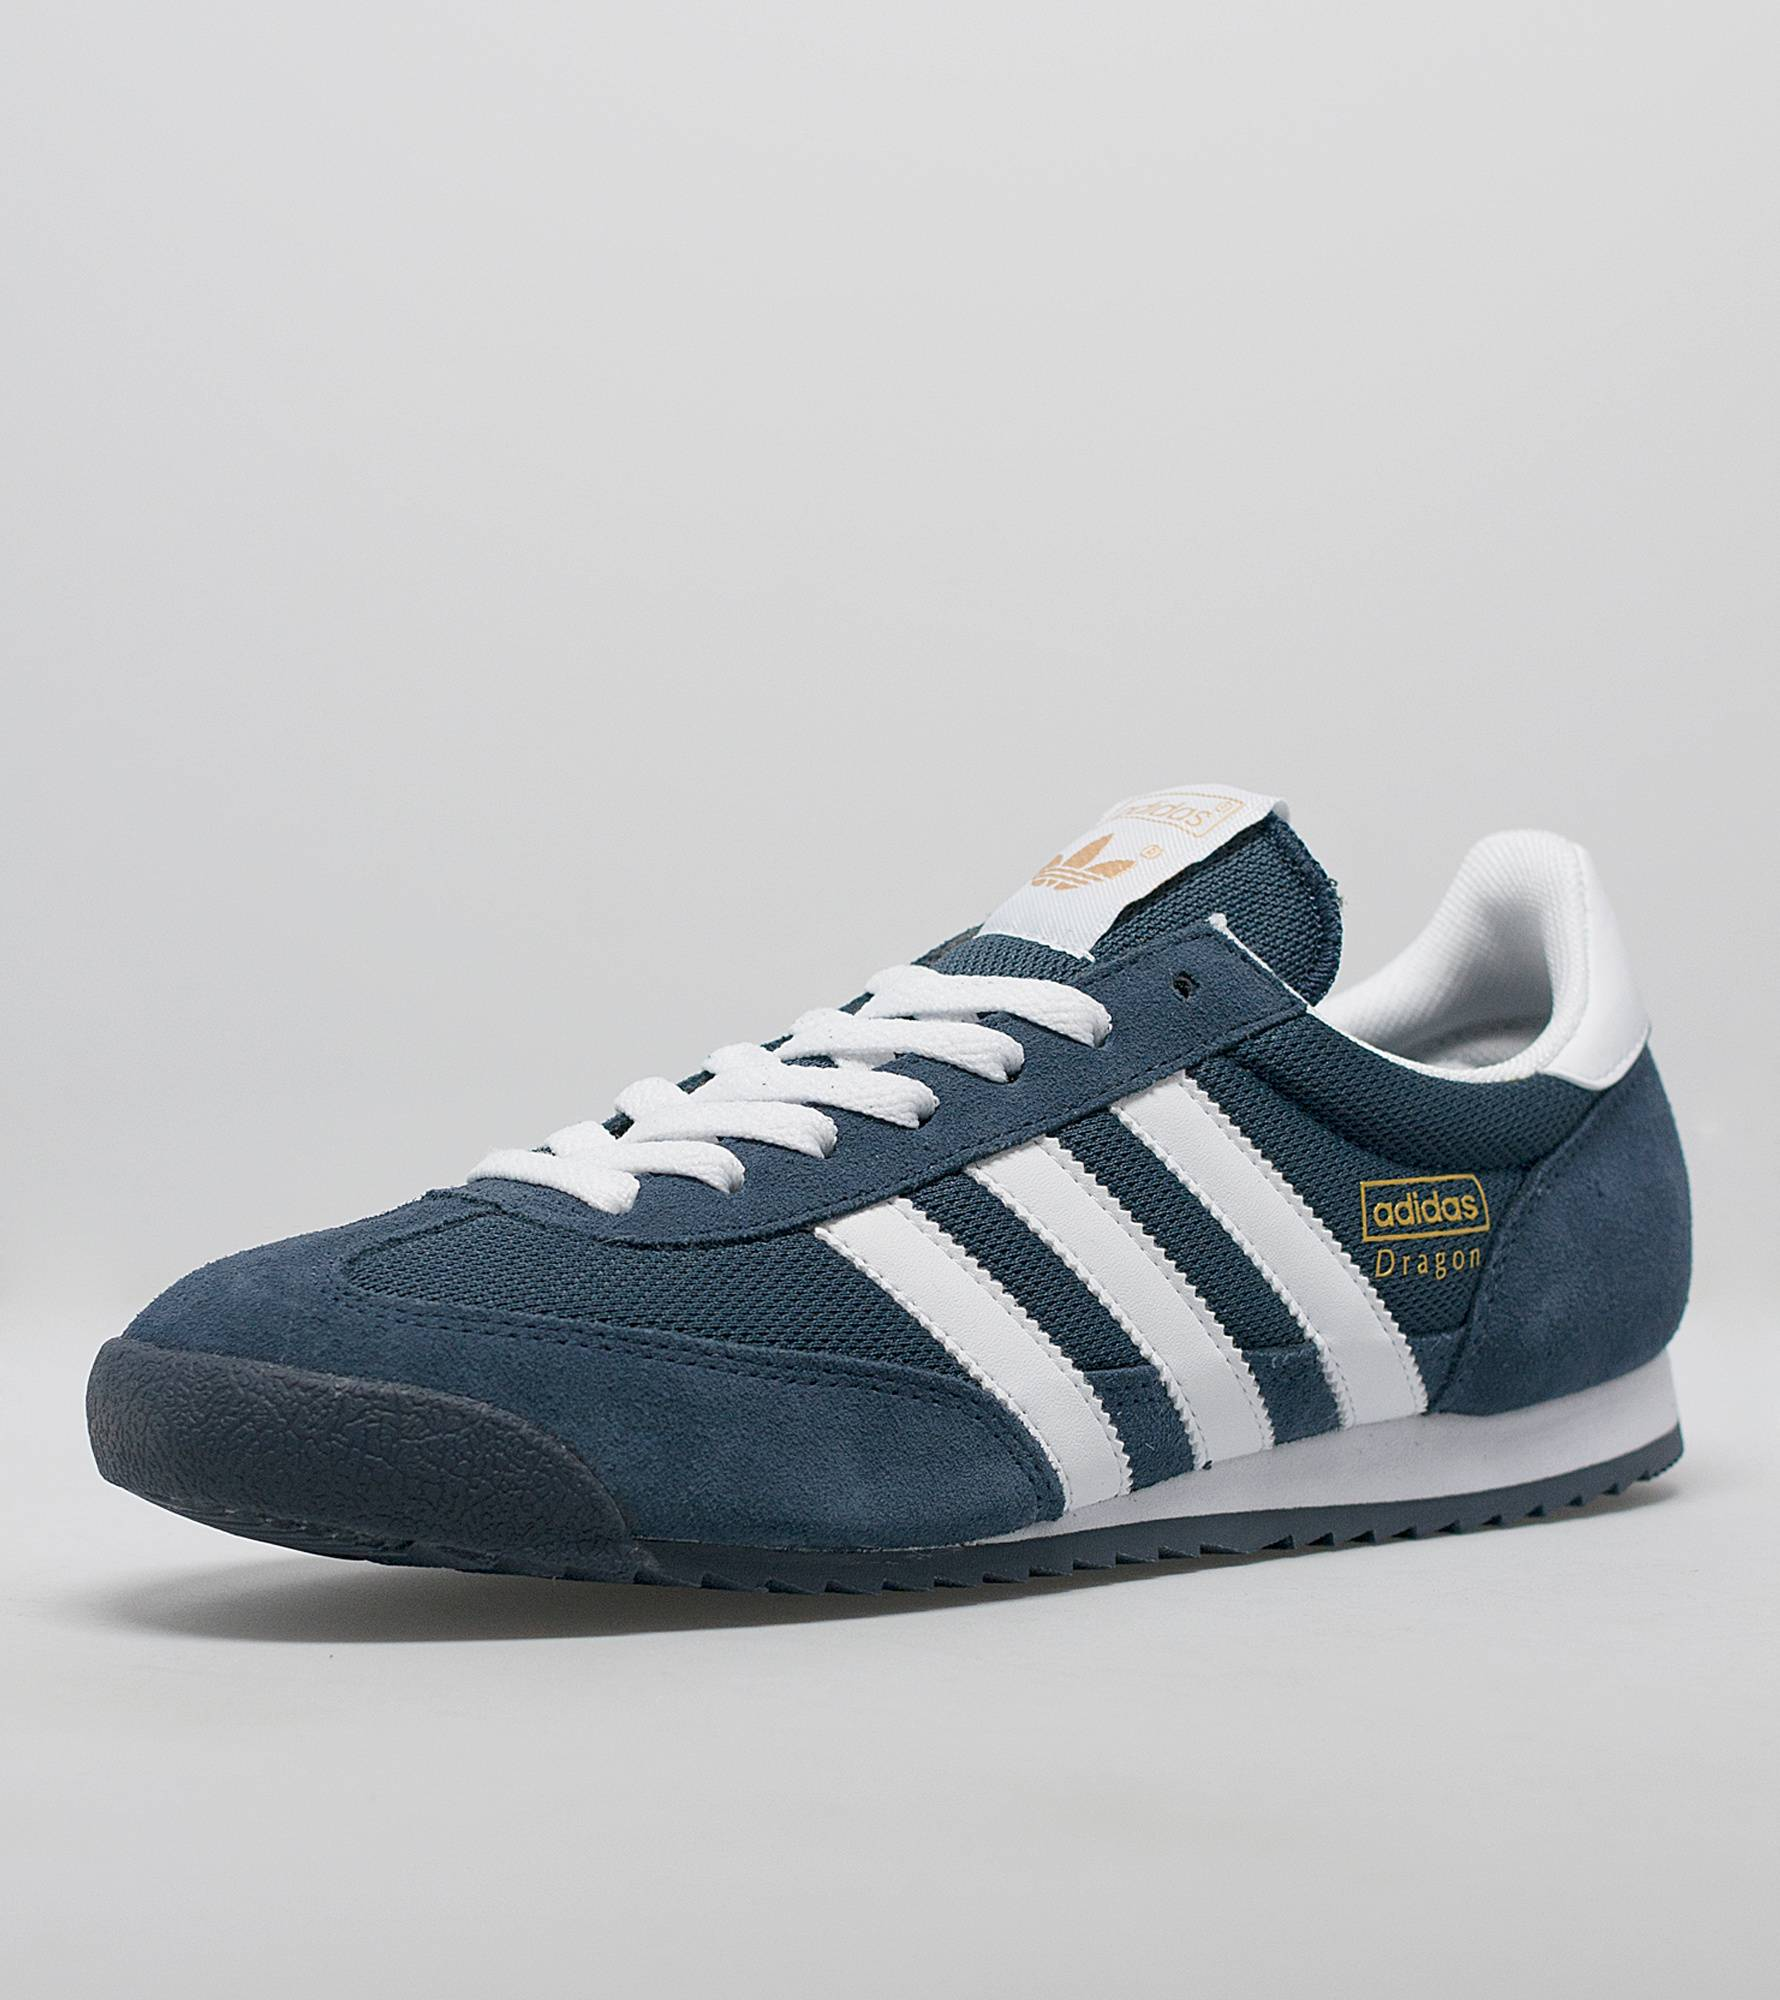 Lads Originals Originals ArchivesThe Room Lads Room Adidas Adidas Originals ArchivesThe Adidas Nvm8n0Ow